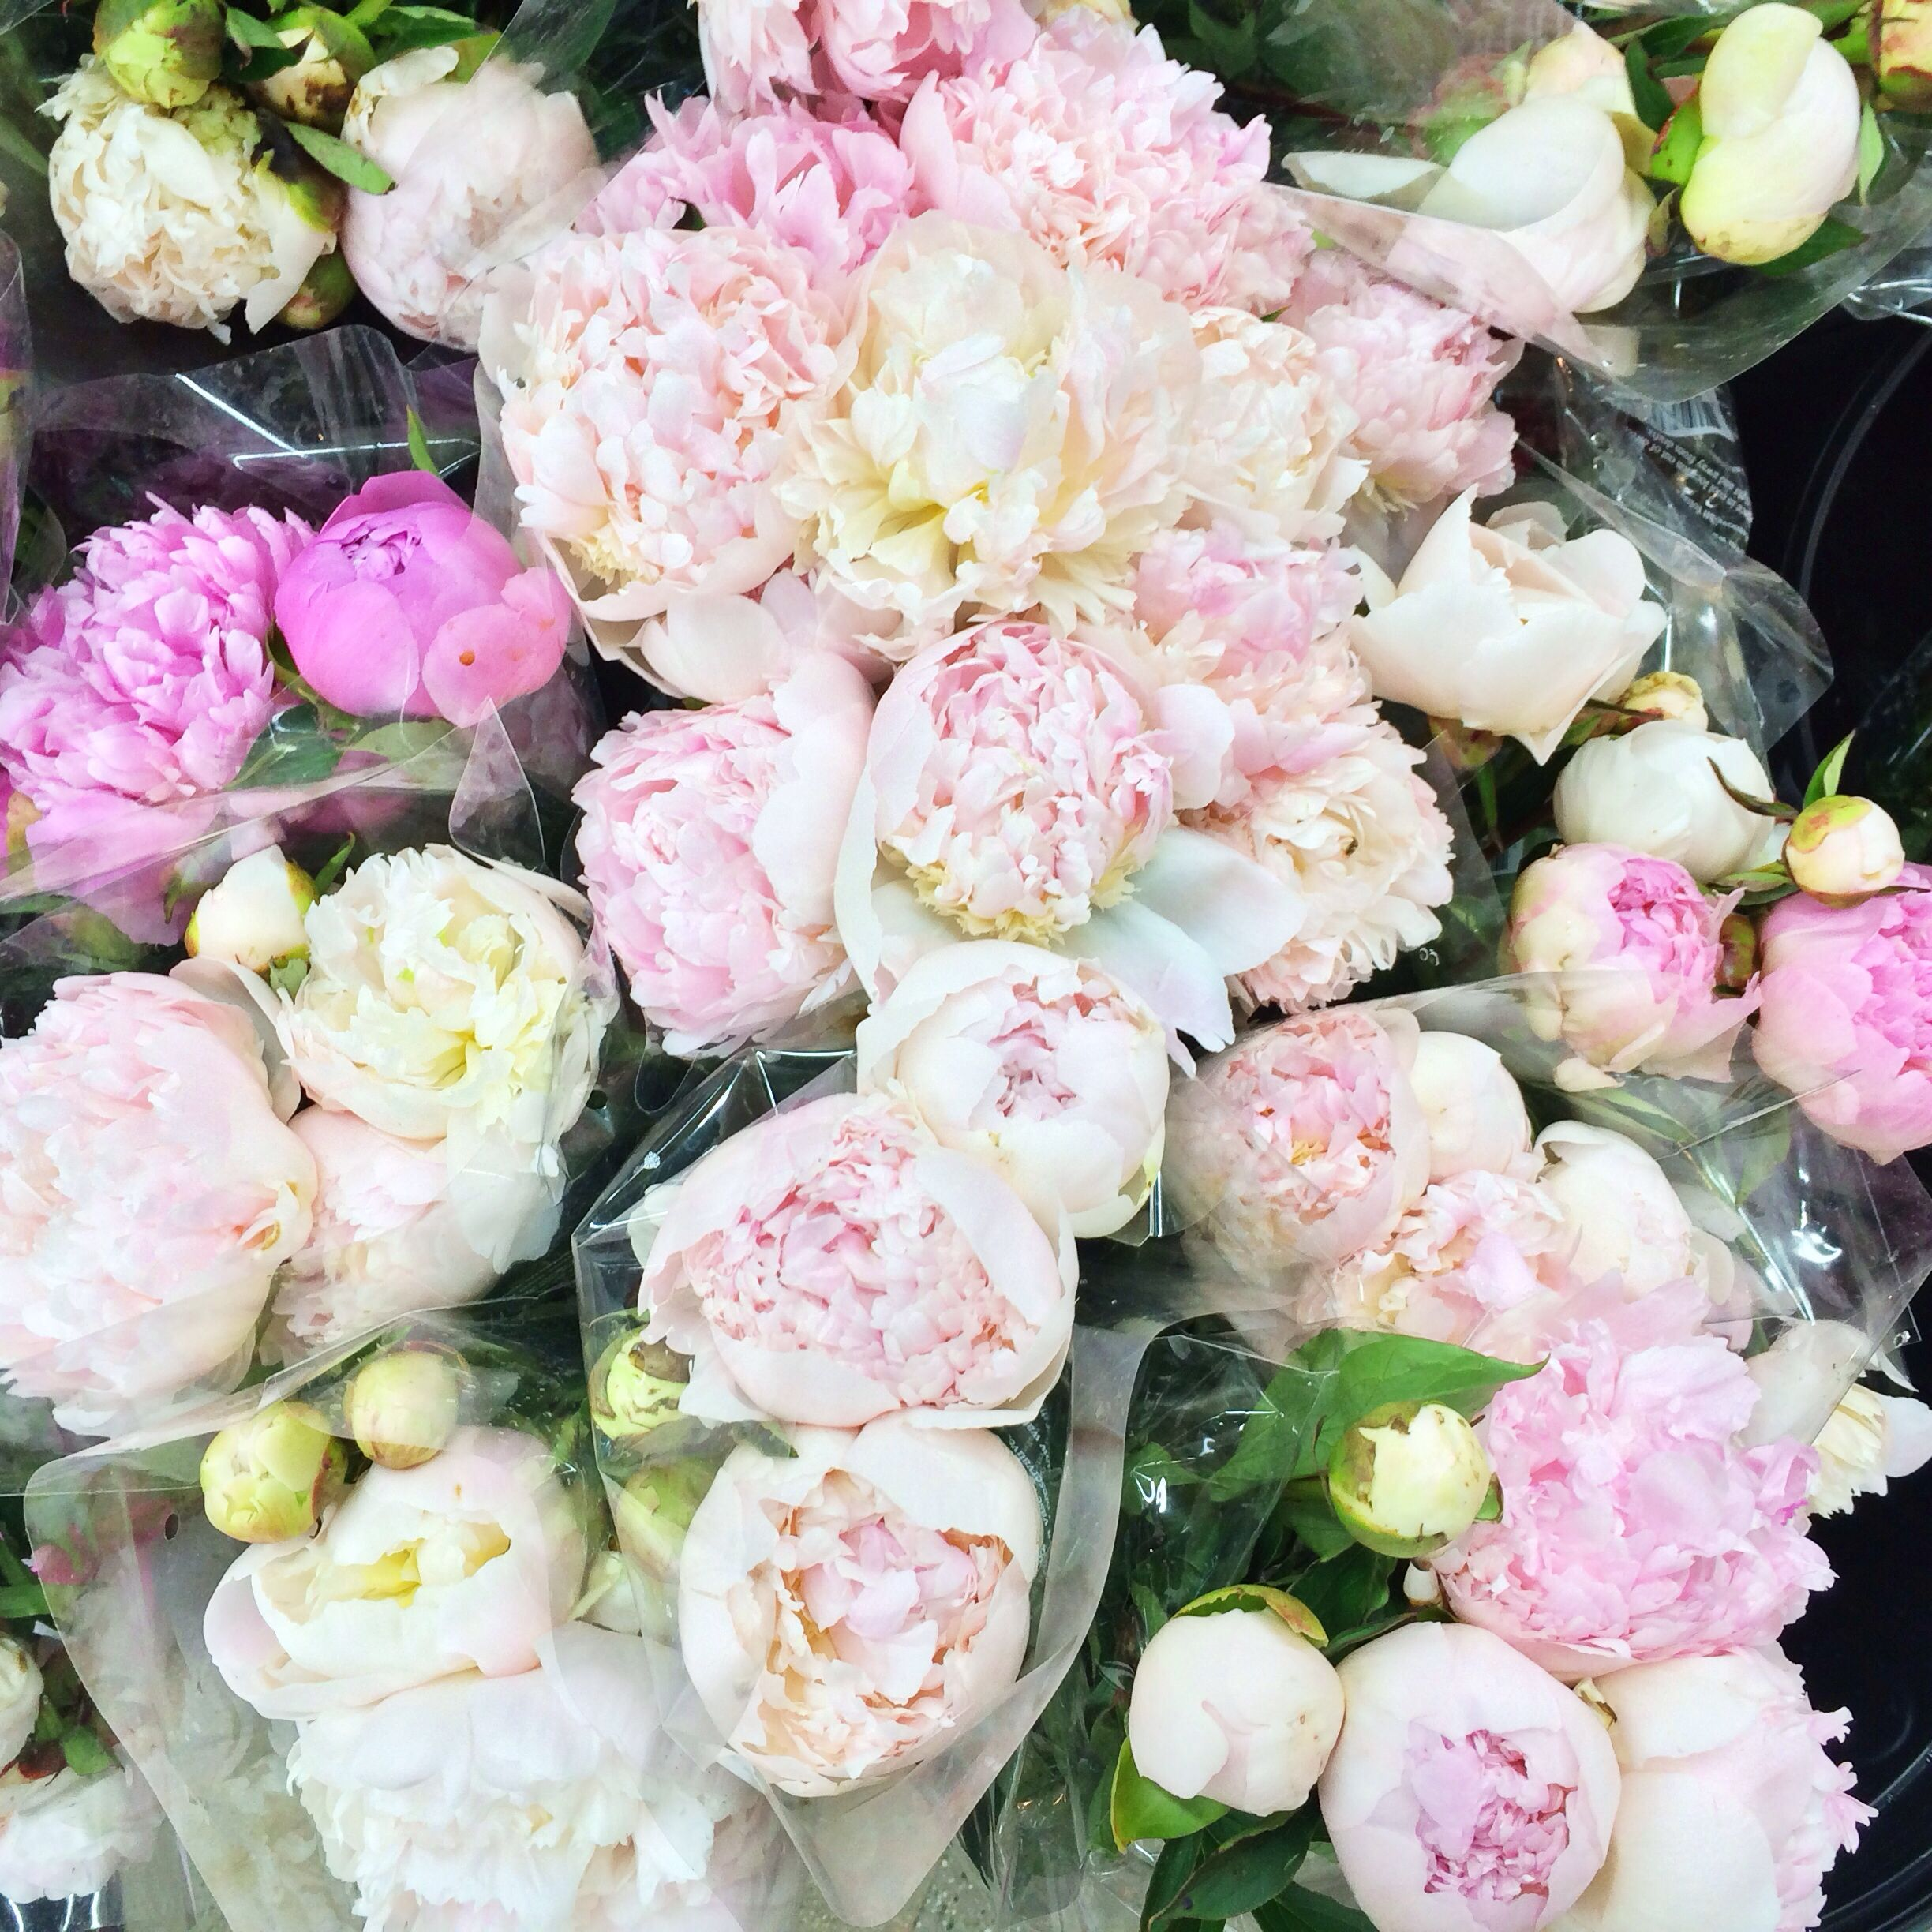 The Pink Peonies pink peonies at trader joe's for $6.99 // stylishpetite